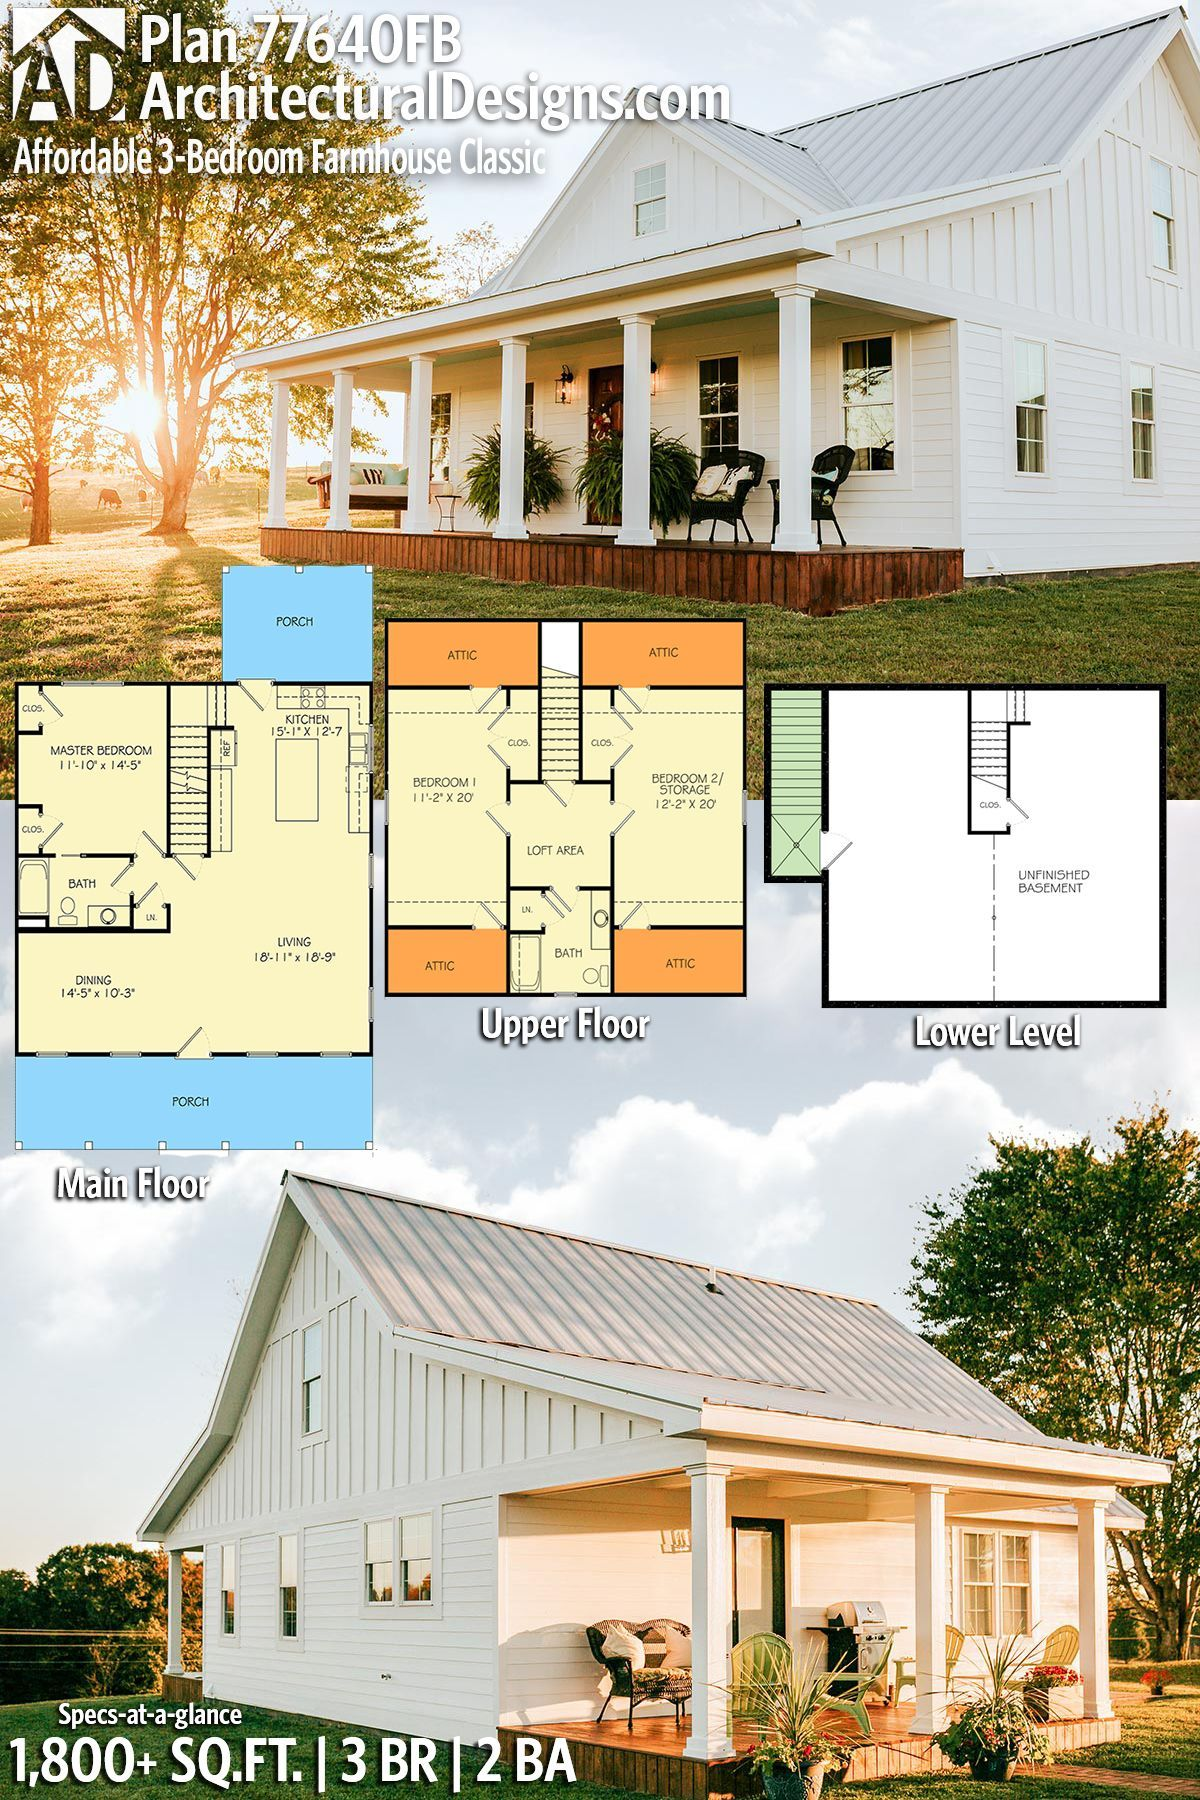 Plan 77640fb Bright And Airy Country Farmhouse Barn House Plans House Plans Farmhouse Brick Exterior House